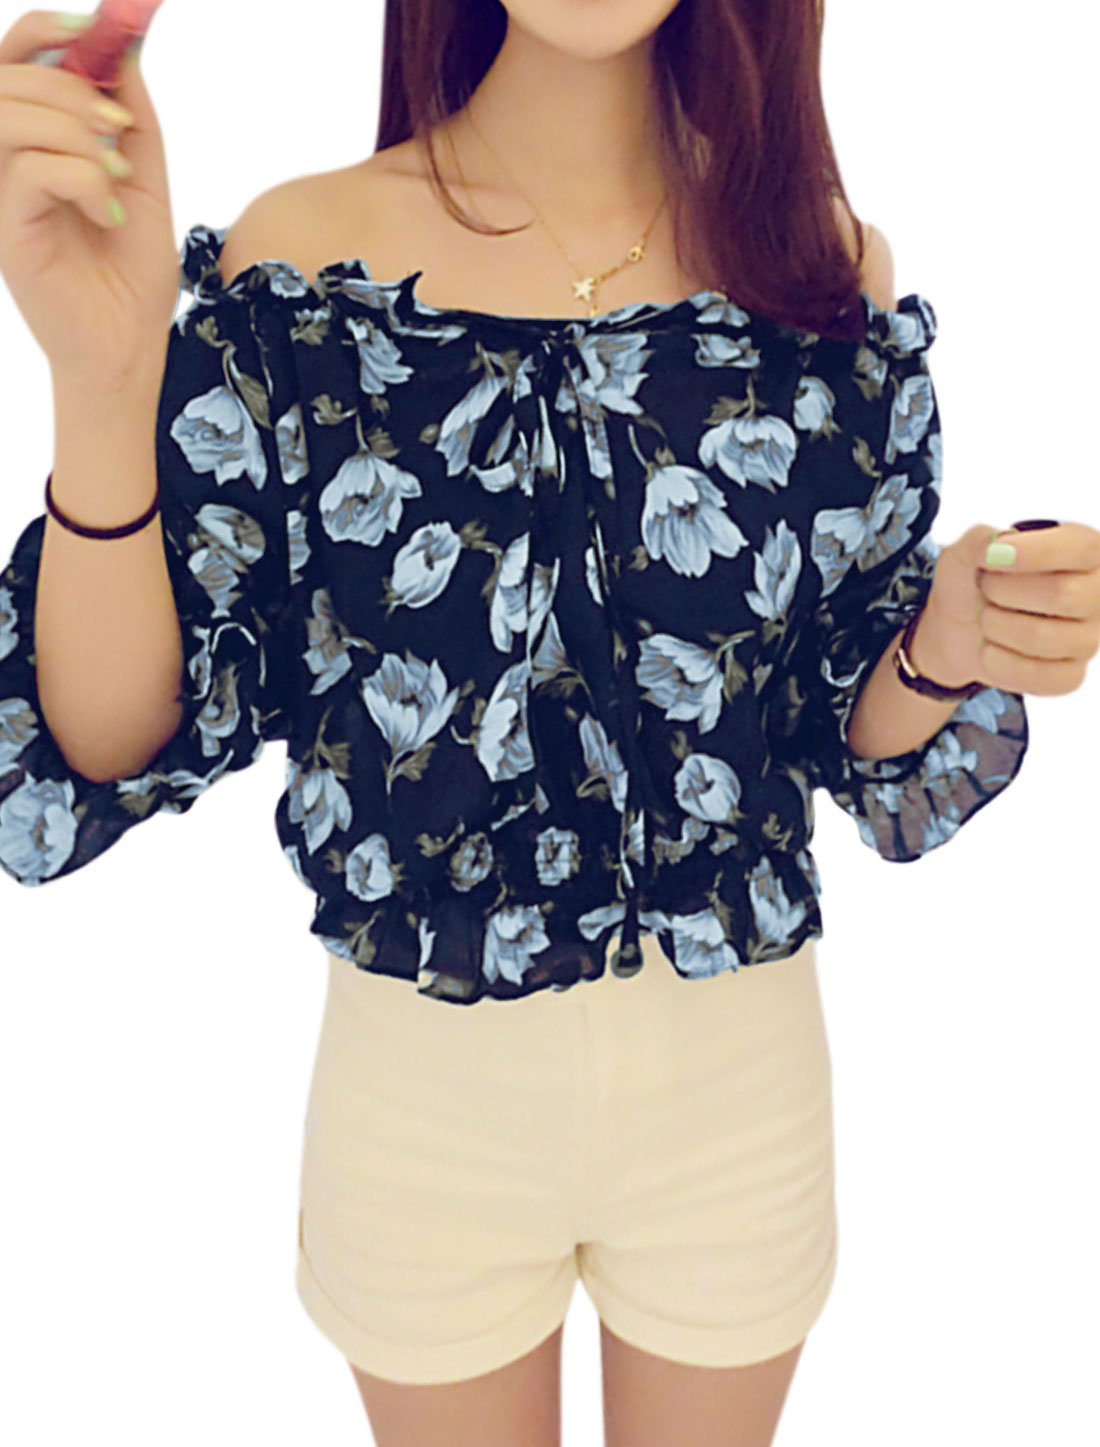 Woman Flower Prints Off The Shoulder 3/4 Sleeves Chiffon Top Navy Blue XS